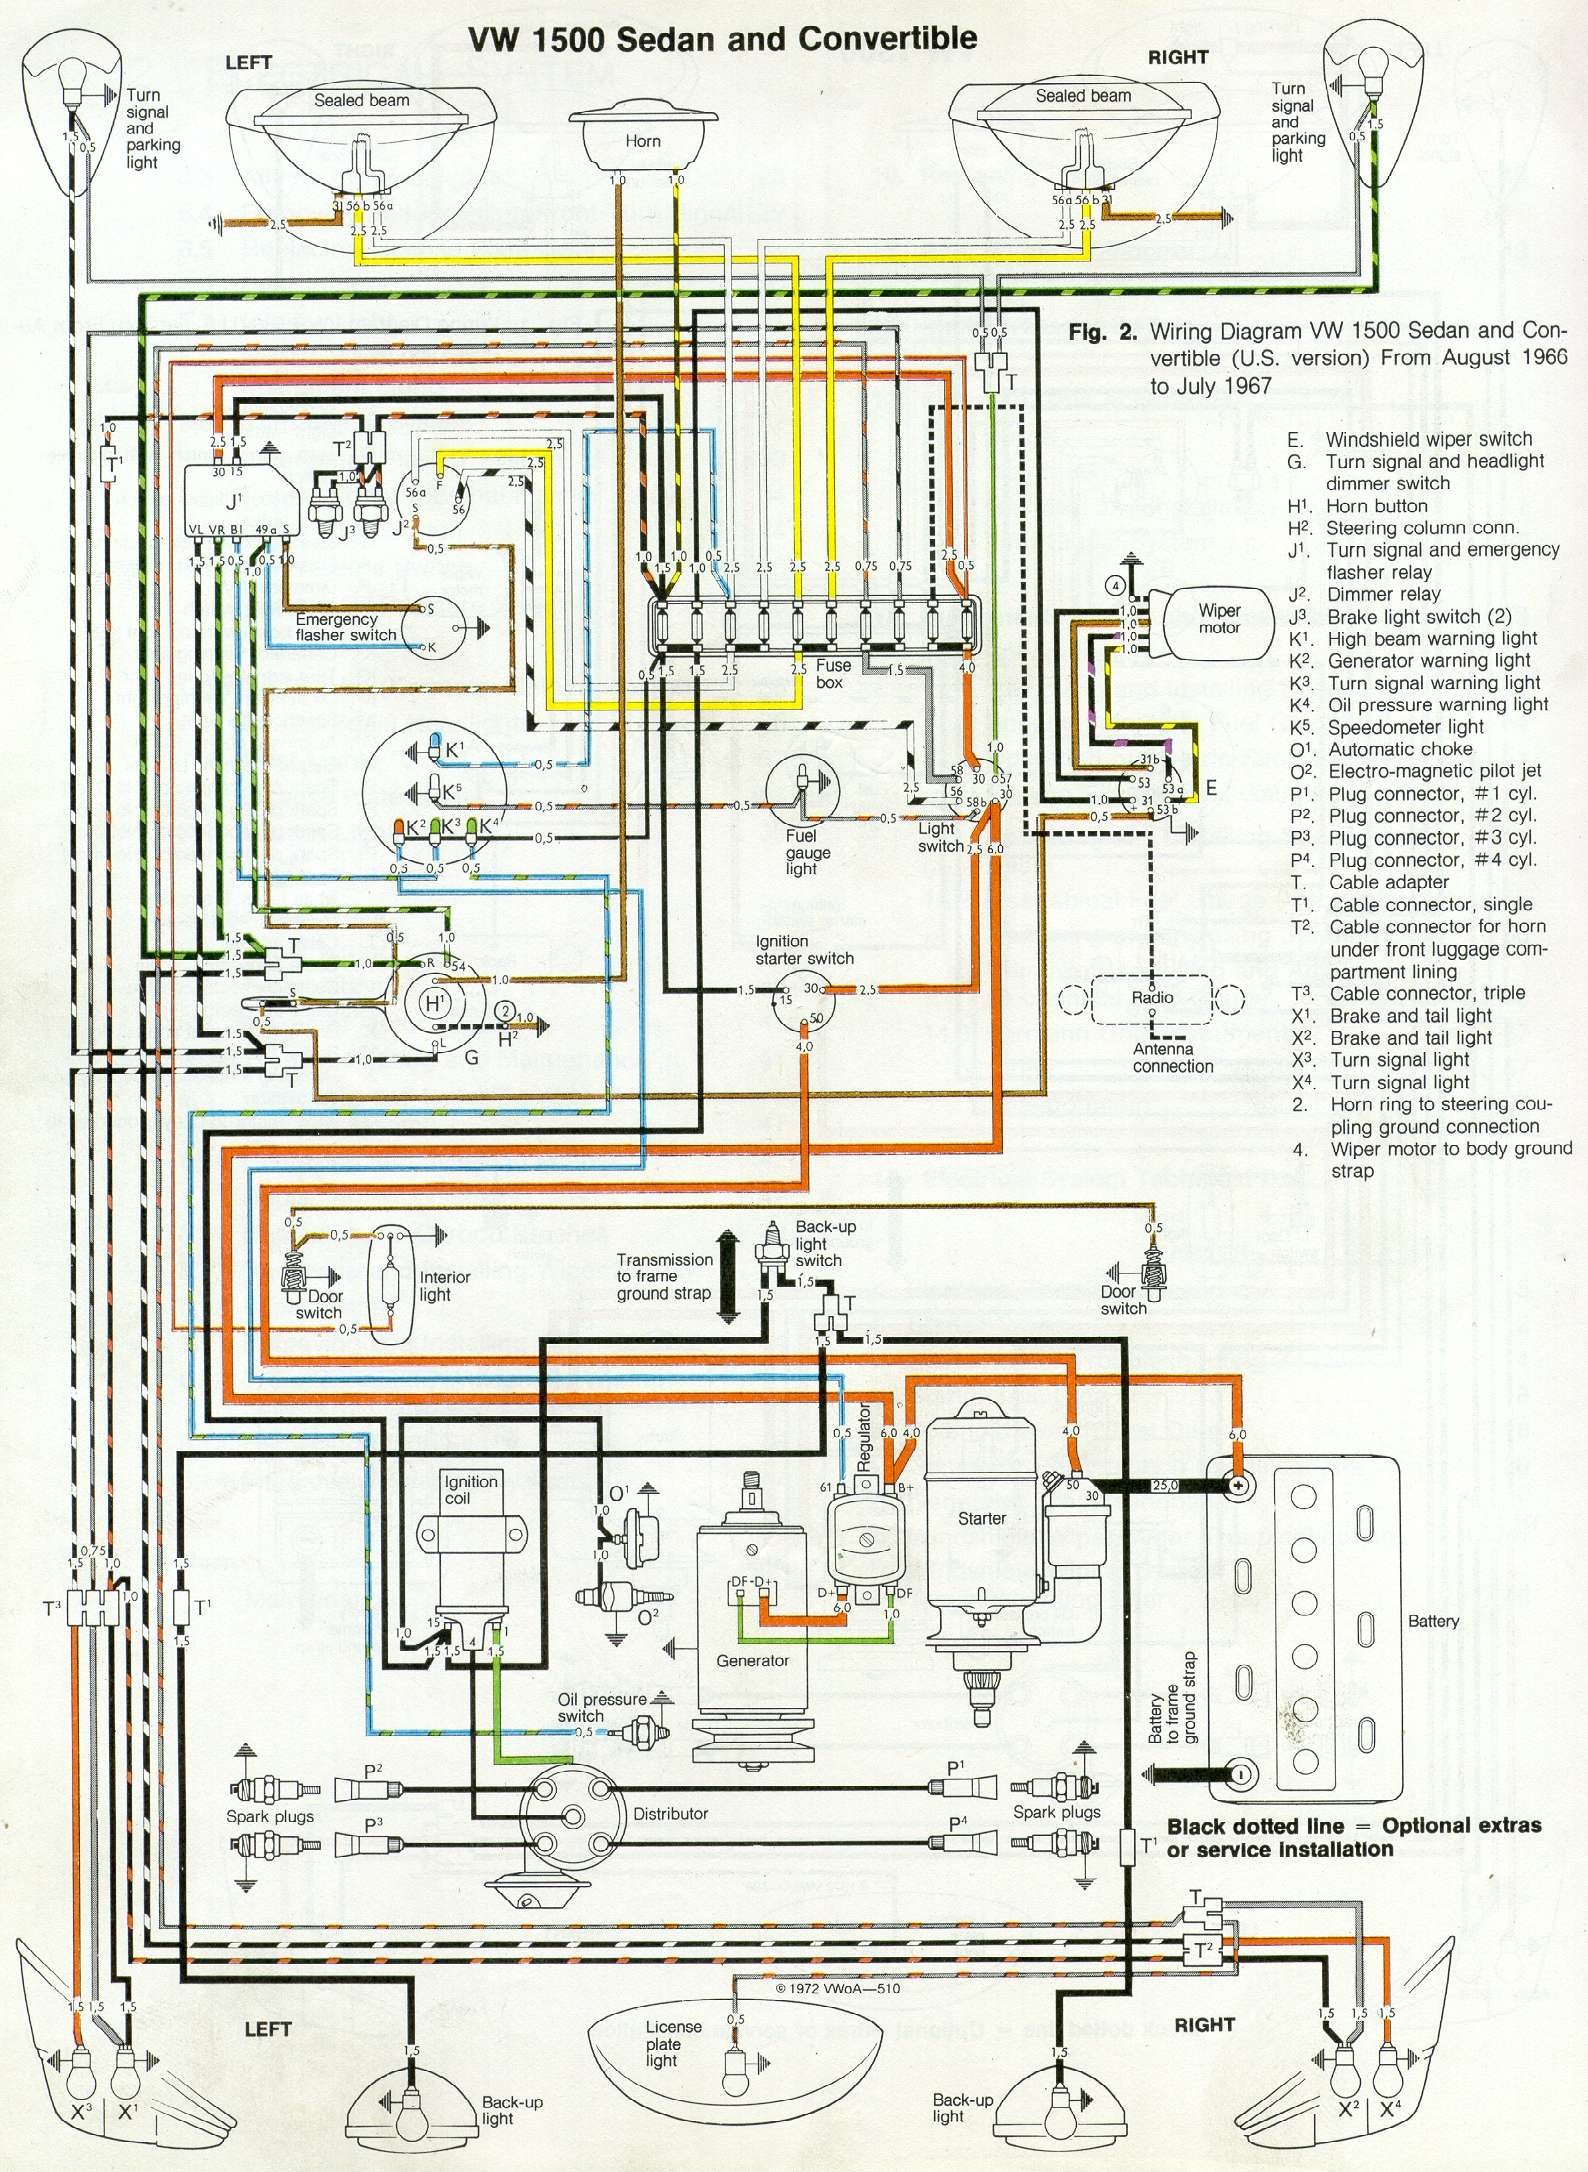 VW bug_1967 other diagrams 1973 vw beetle wiring diagram at cos-gaming.co